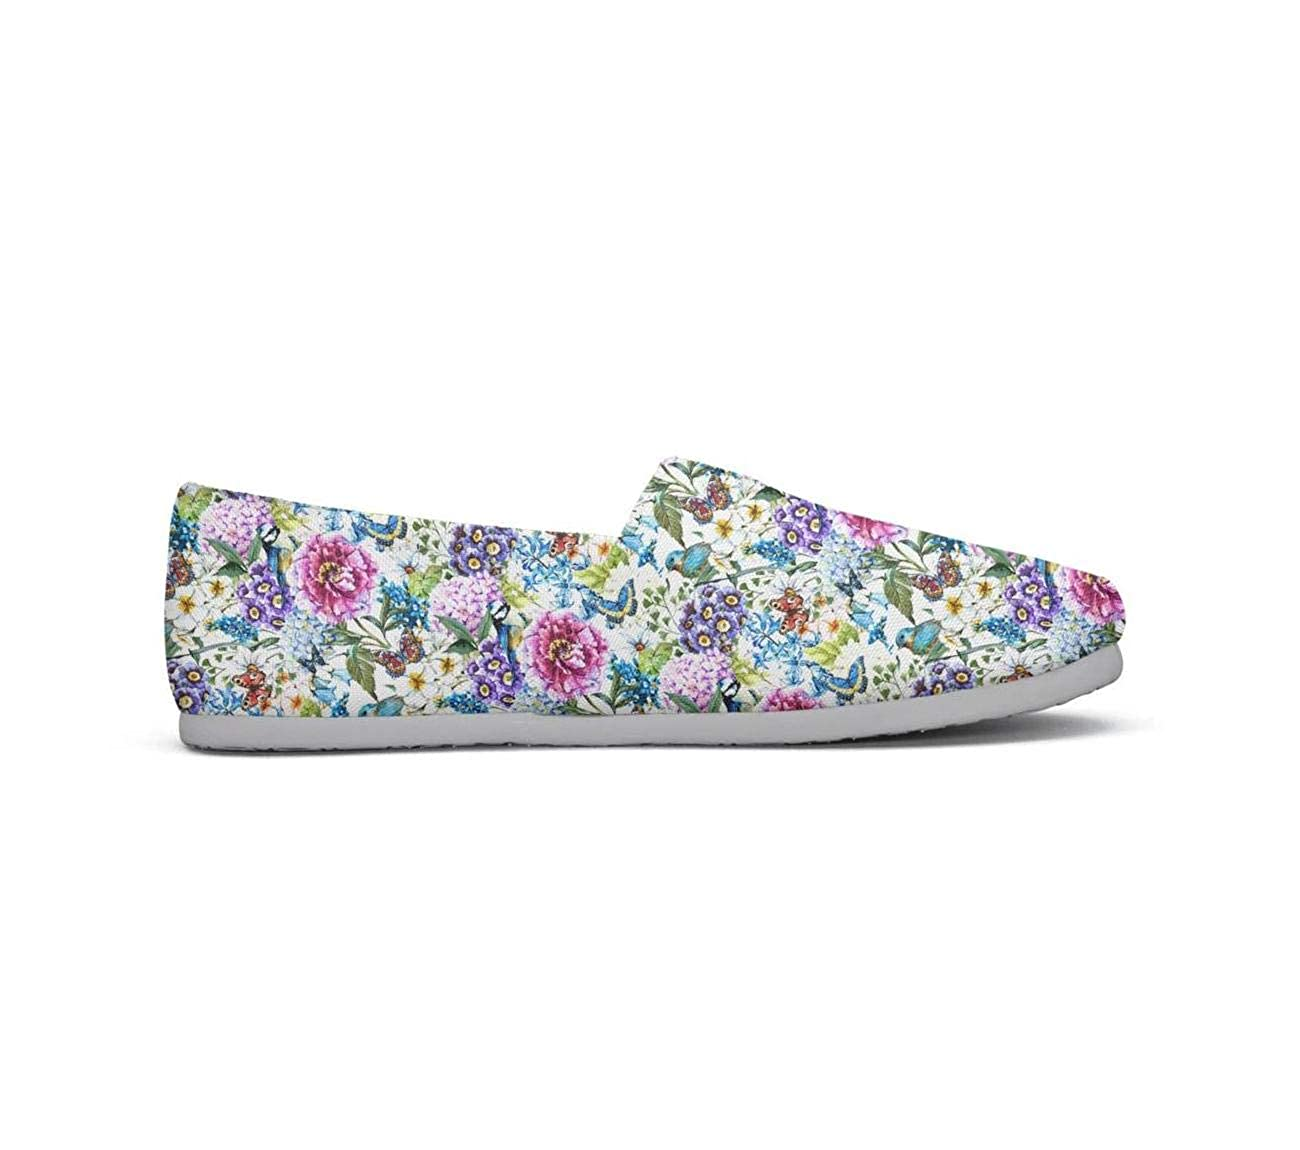 Colorful Flower Seamless Tropical Patterns Girl Lightweight Casual Canvas Retro Sneakers Jogger Shoes